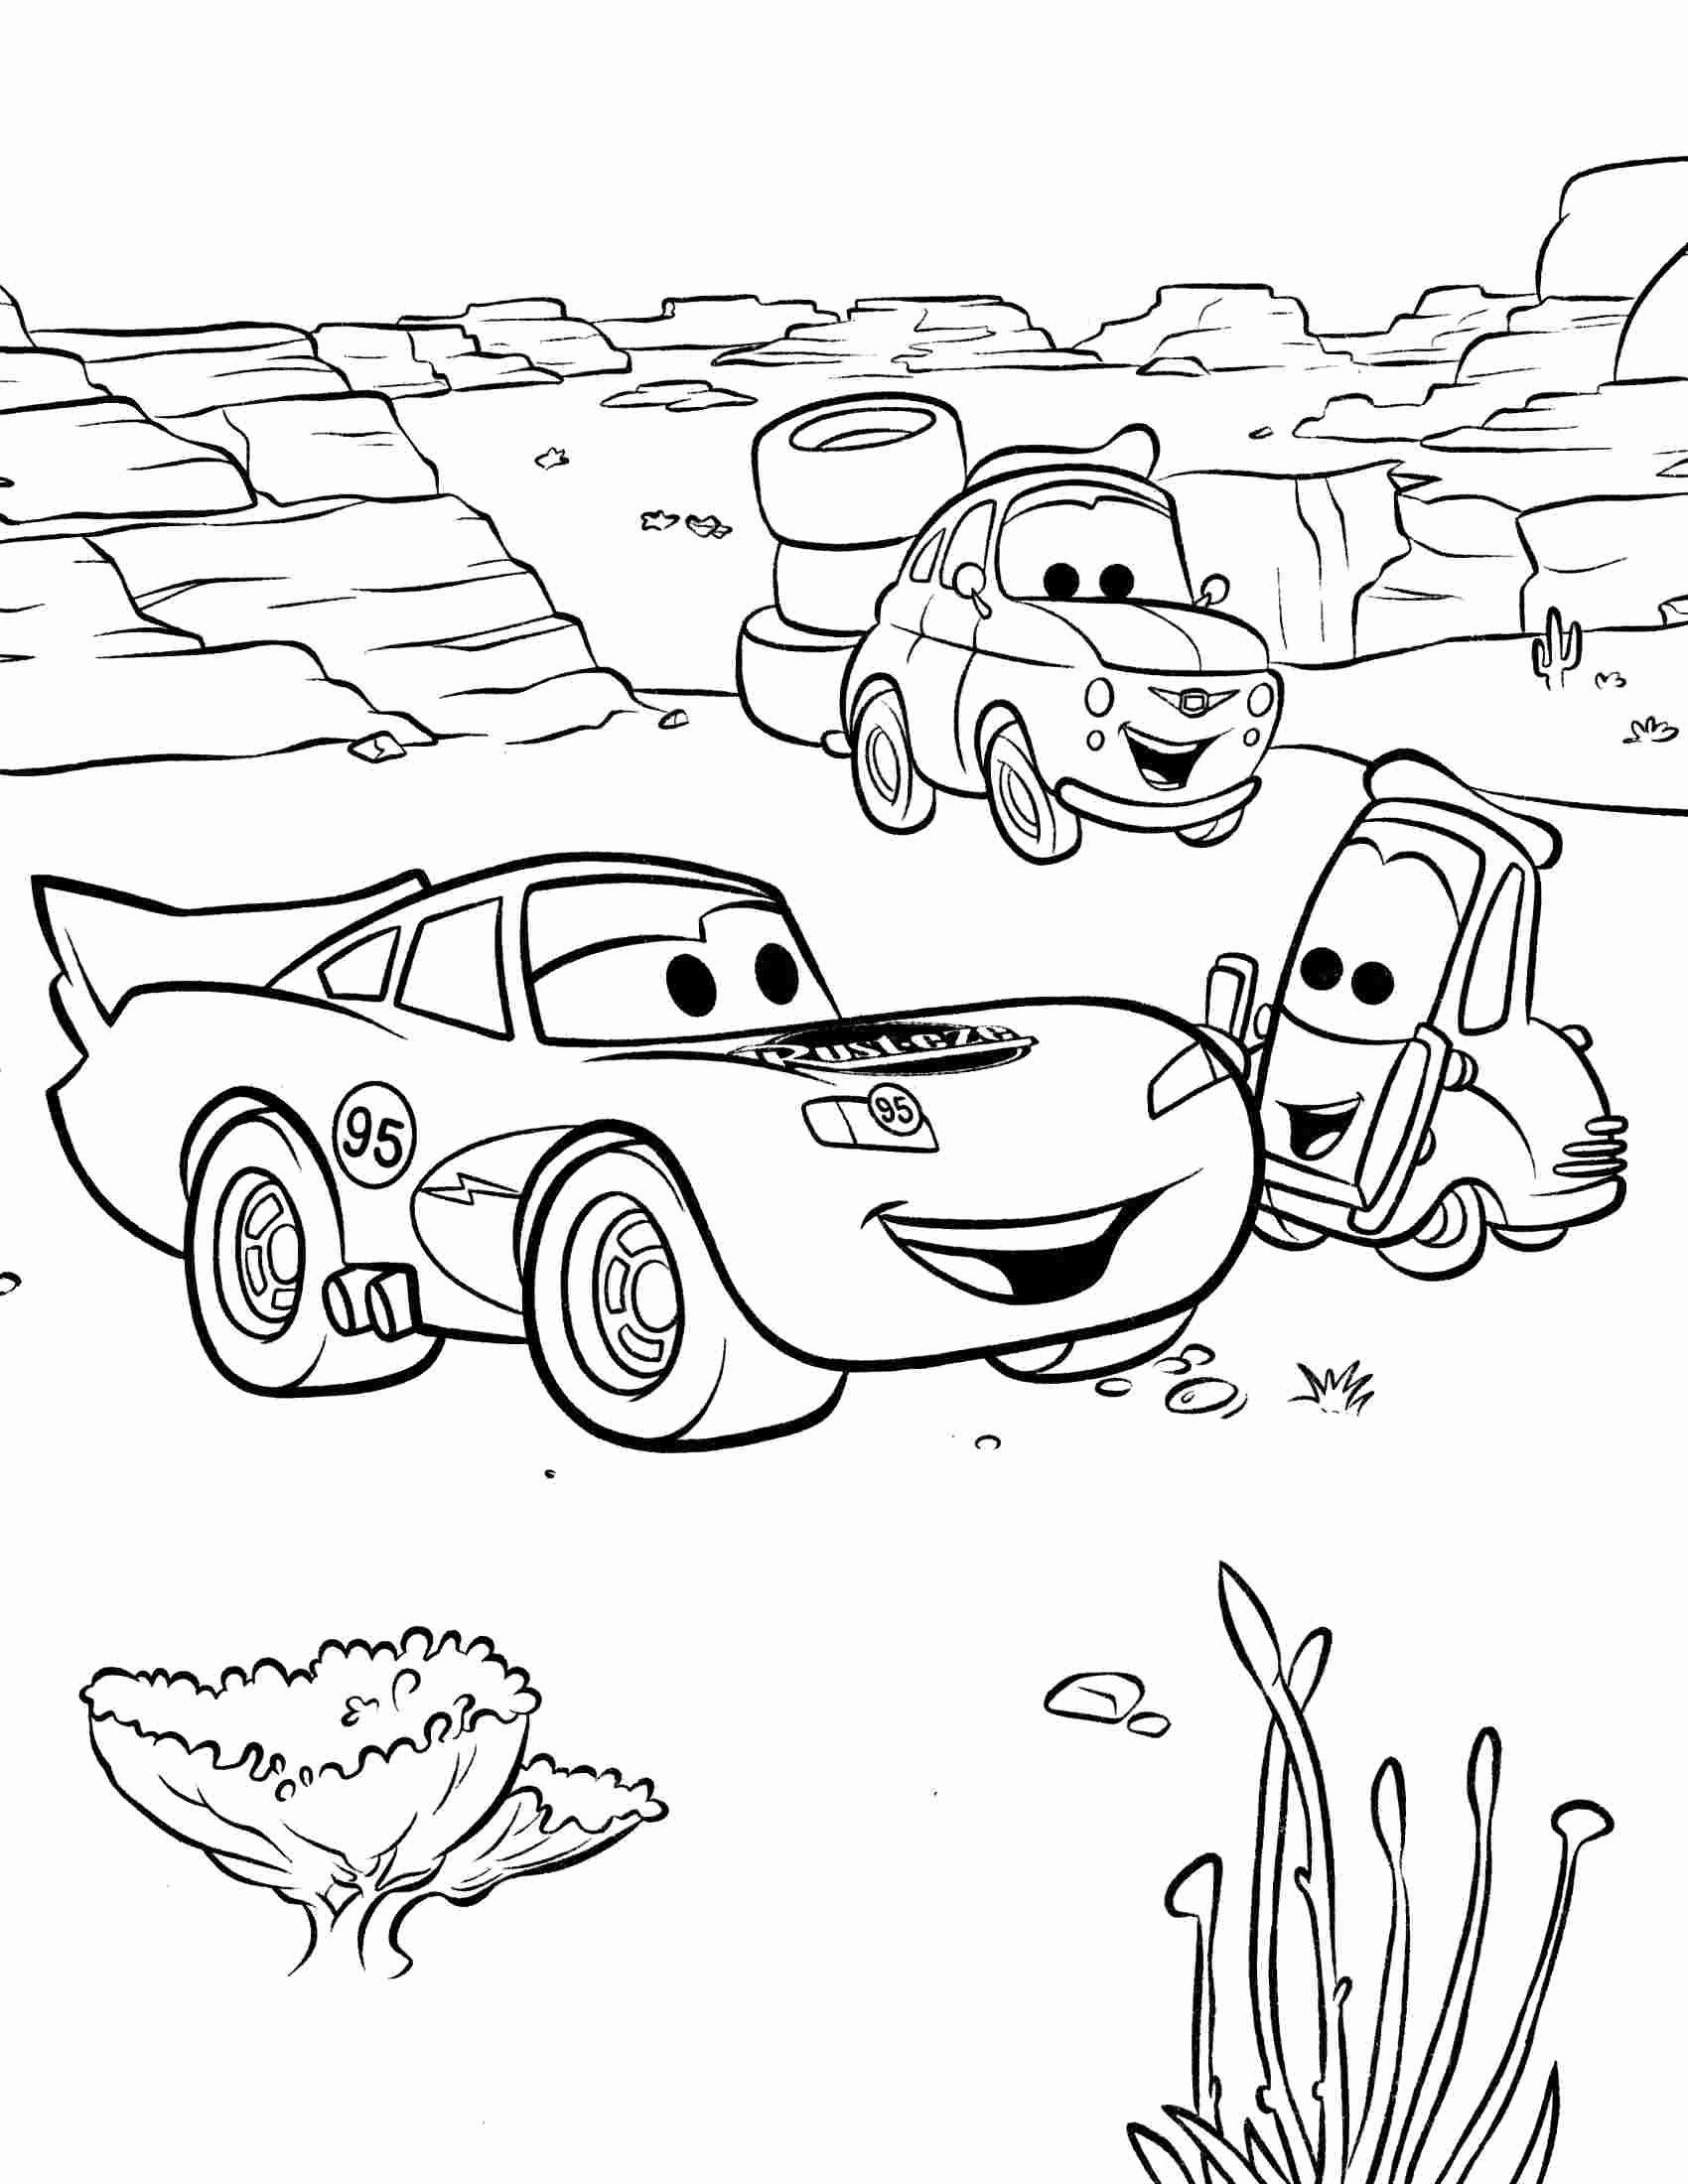 Disney Cars Coloring Book Fresh Coloring Pages Disney Cars Coloring Printable Lightning Disney Coloring Pages Cars Coloring Pages Disney Cars [ 2200 x 1700 Pixel ]